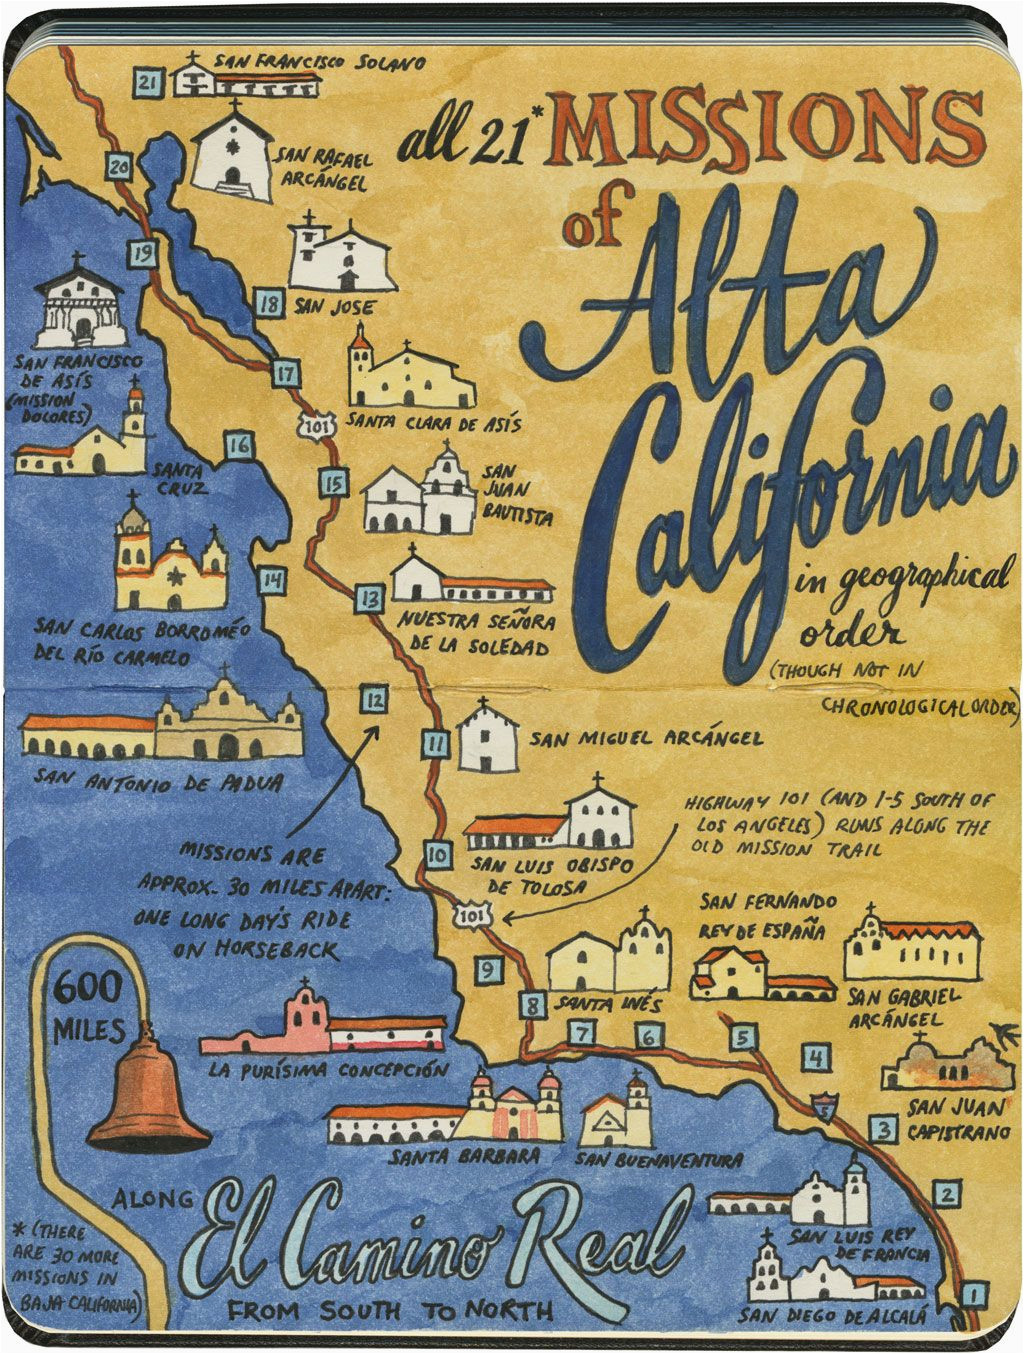 Maps Of California Missions Earlier This Year I Visited All 21 California Missions and Created